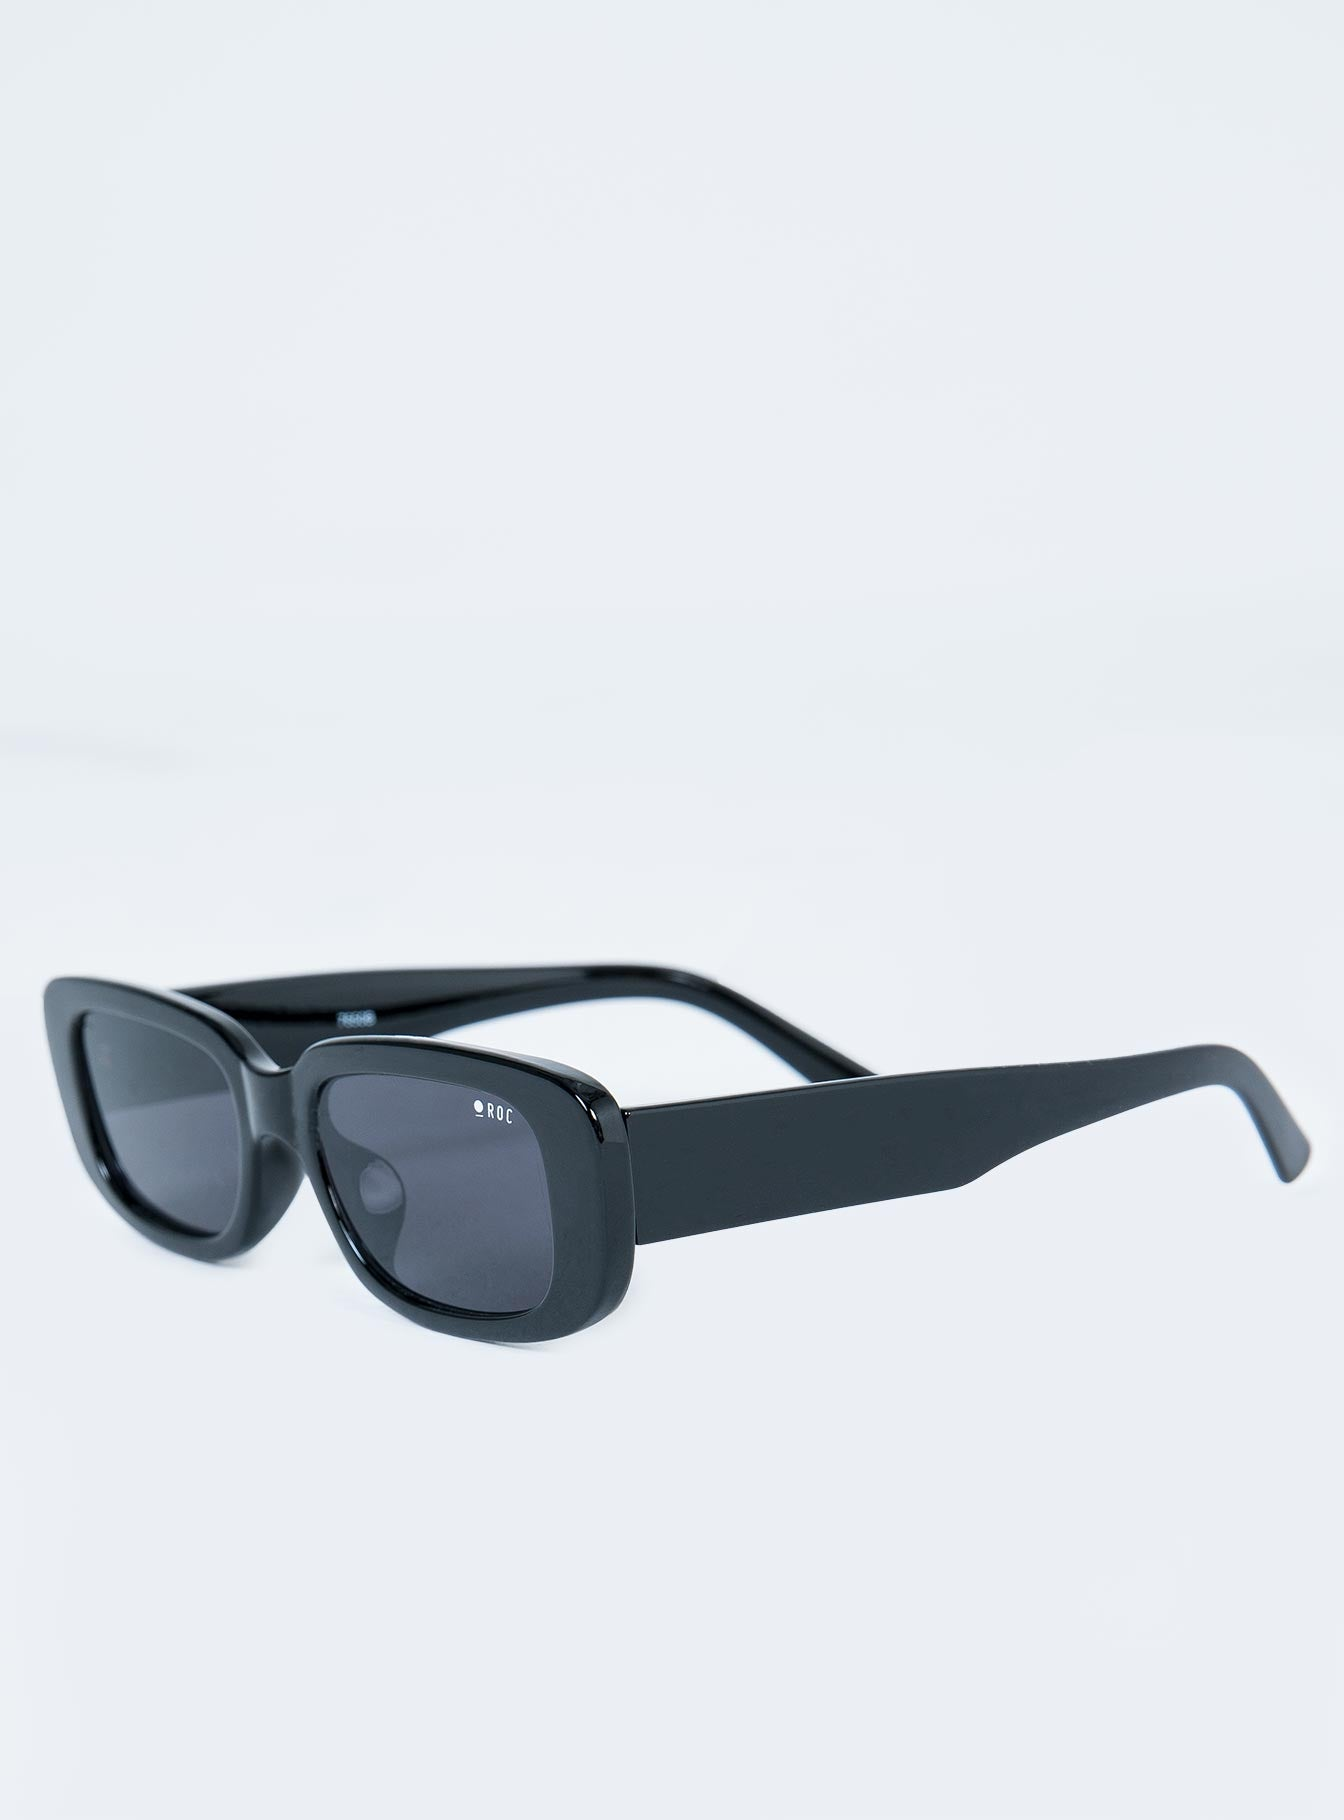 Creeper Sunglasses Black